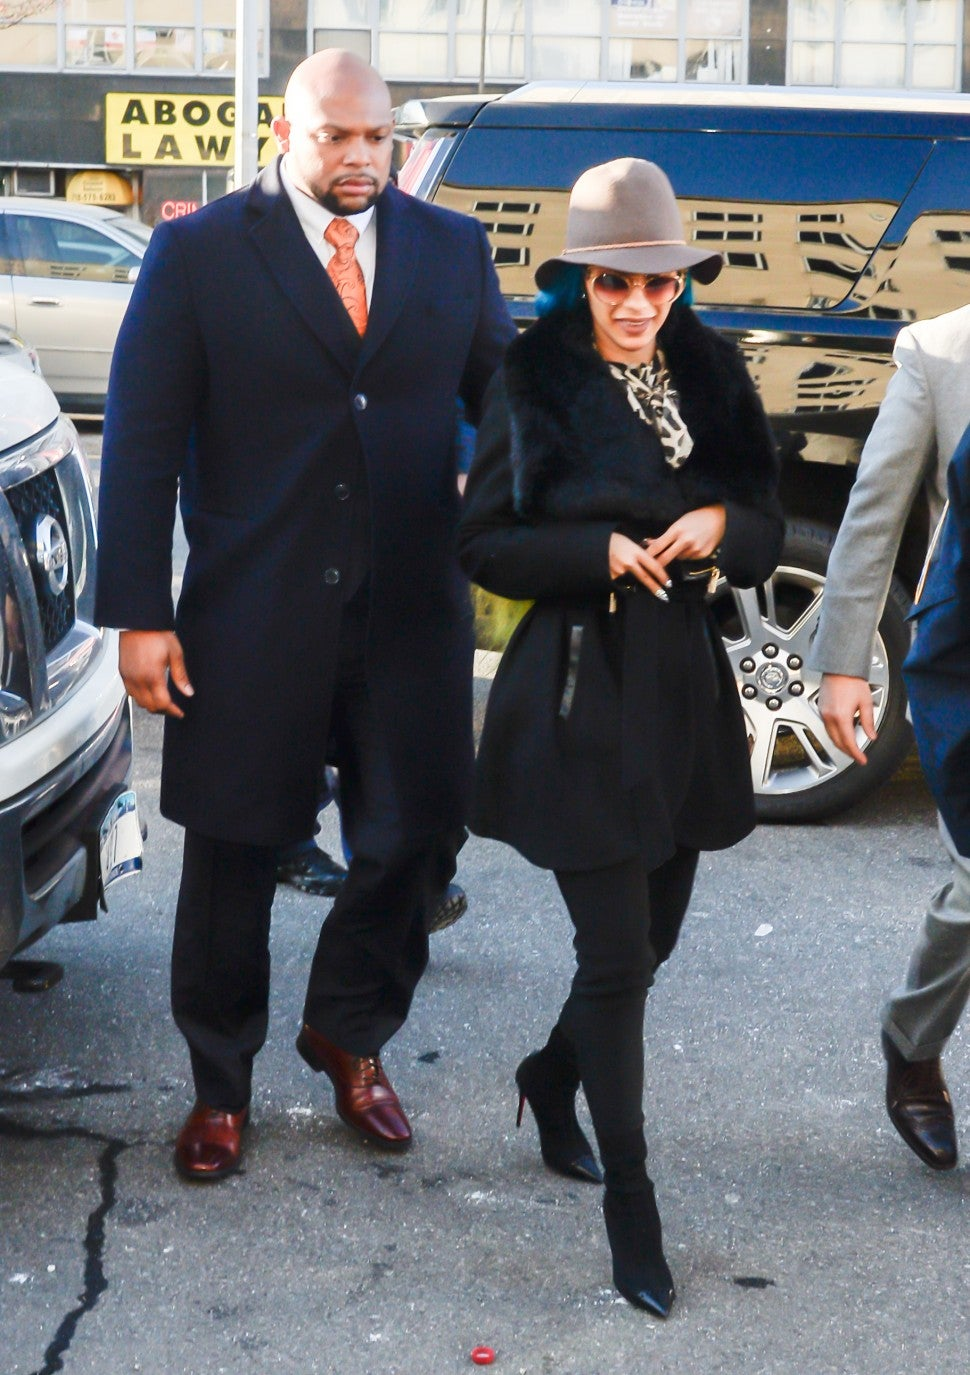 Cardi B Court: Cardi B Shows Up To Court As She Receives 5 GRAMMY